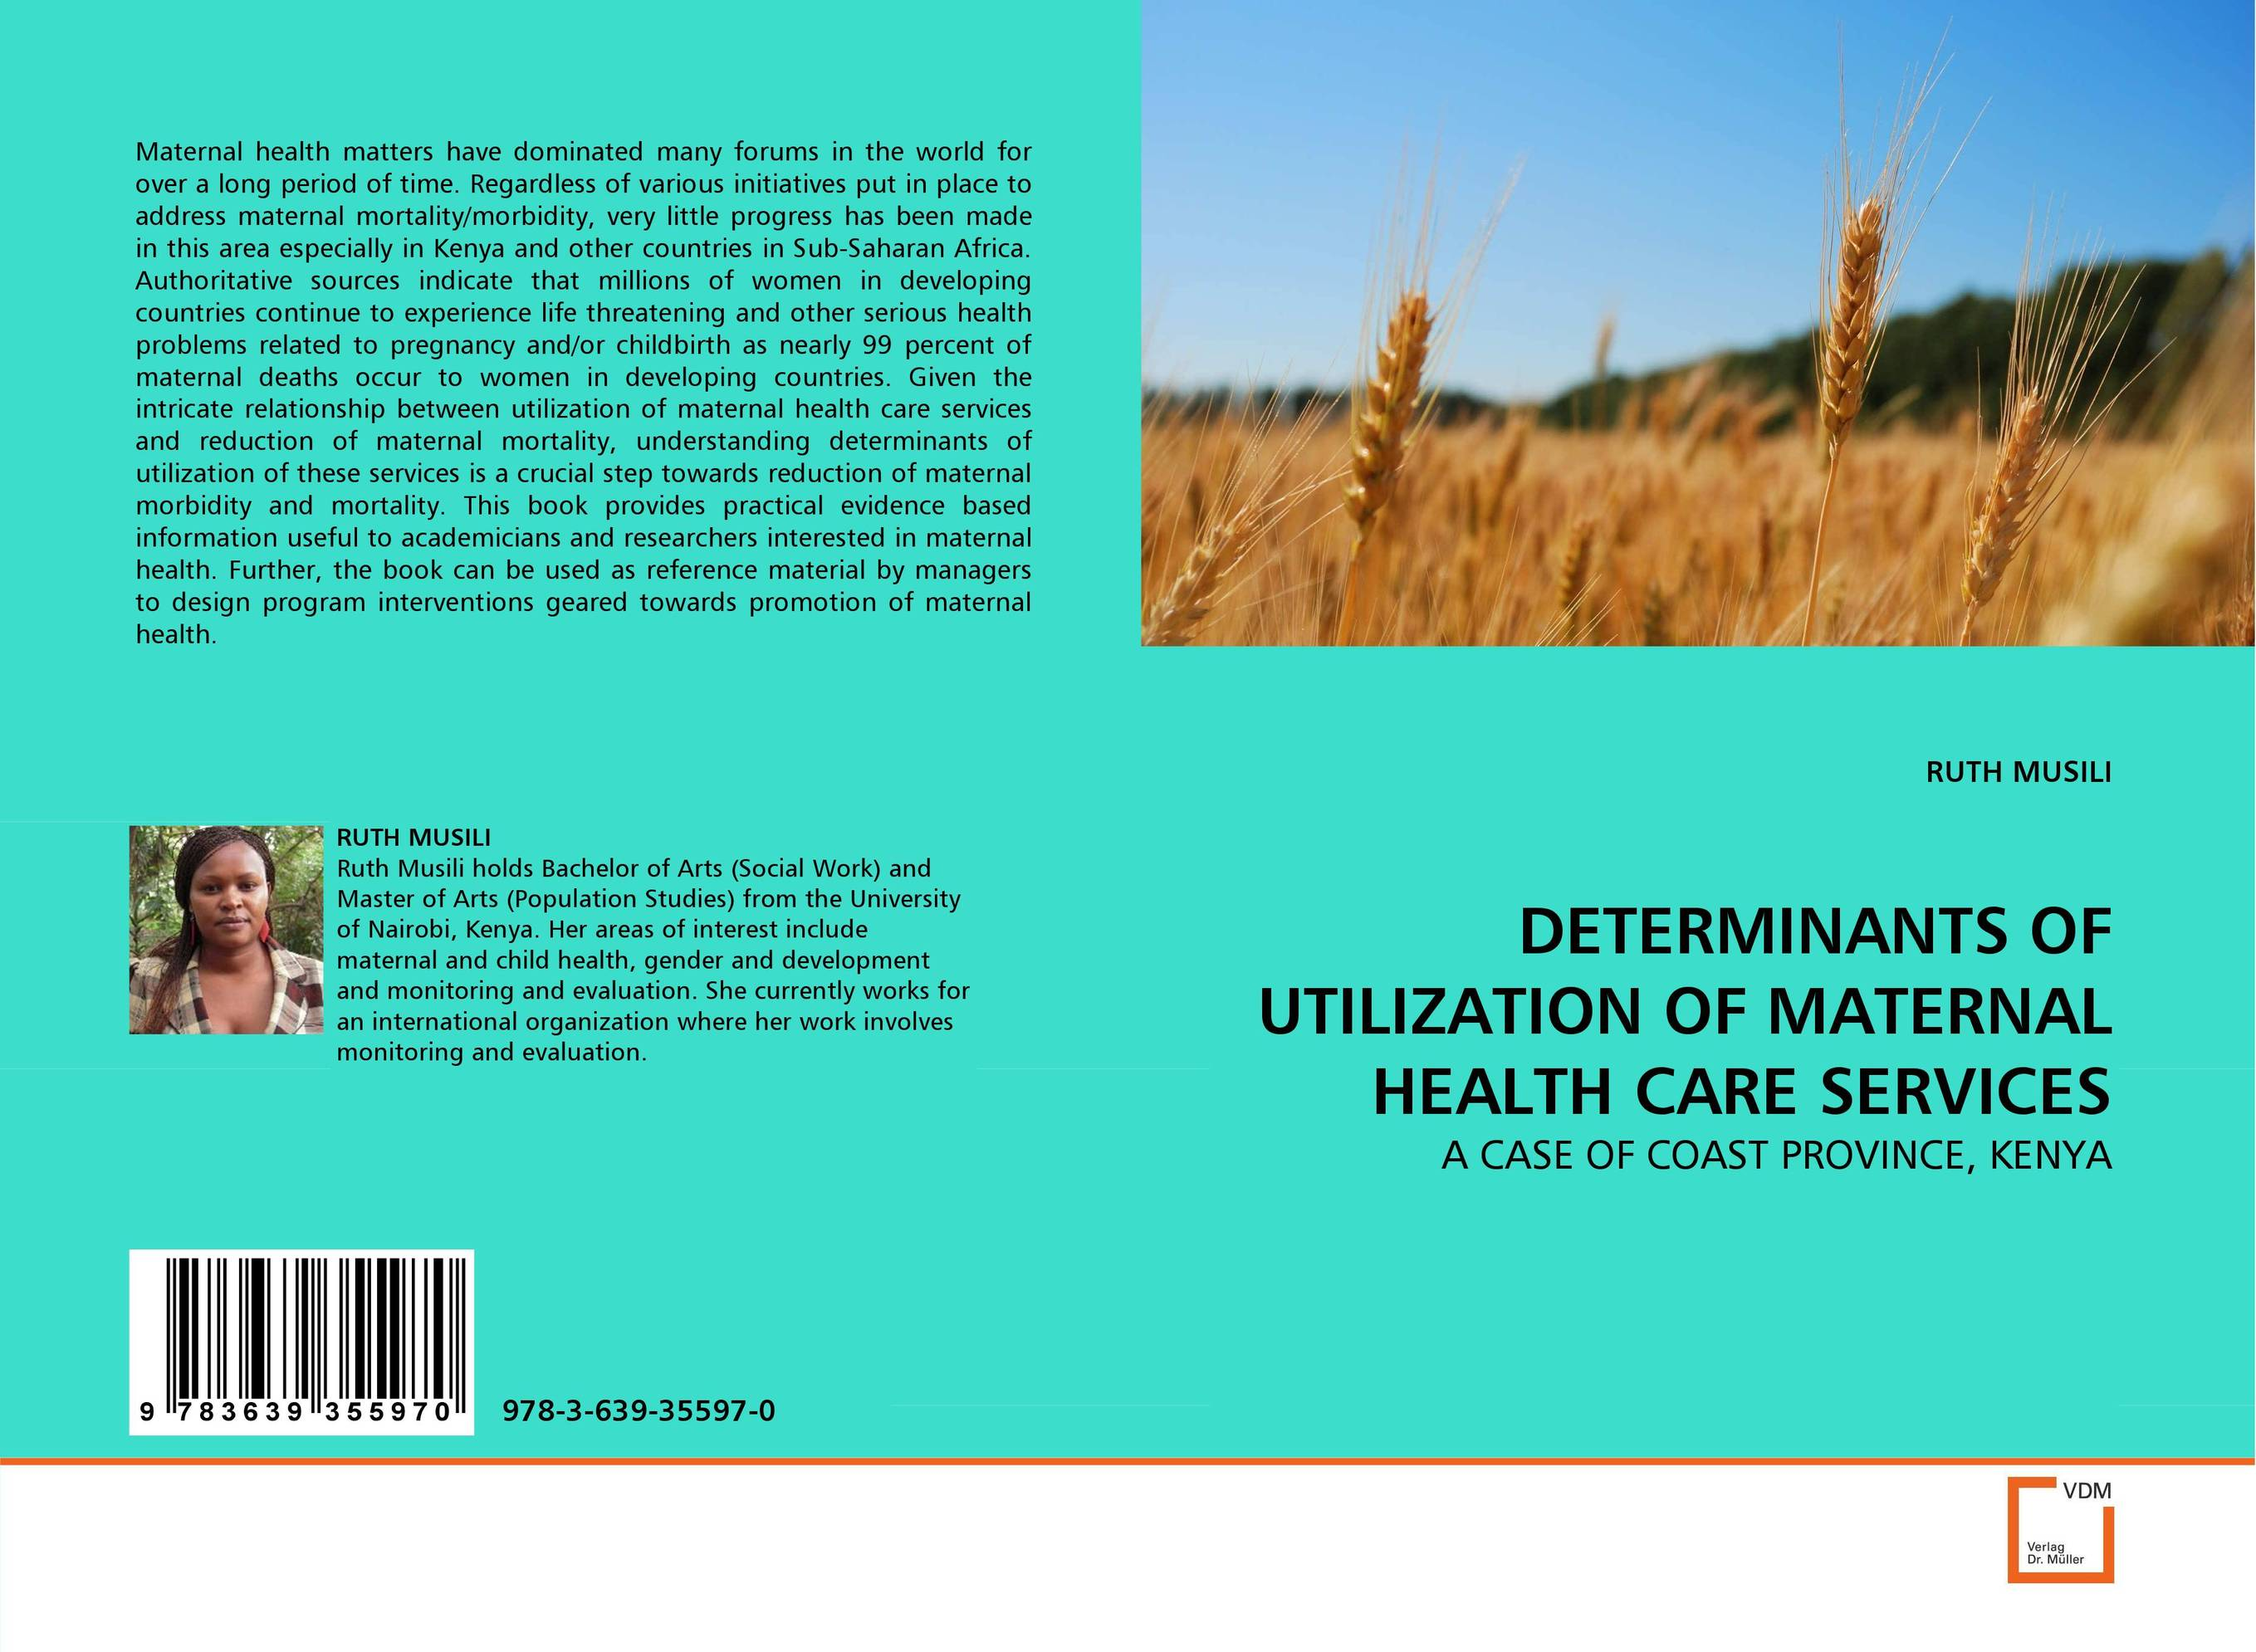 DETERMINANTS OF UTILIZATION OF MATERNAL HEALTH CARE SERVICES